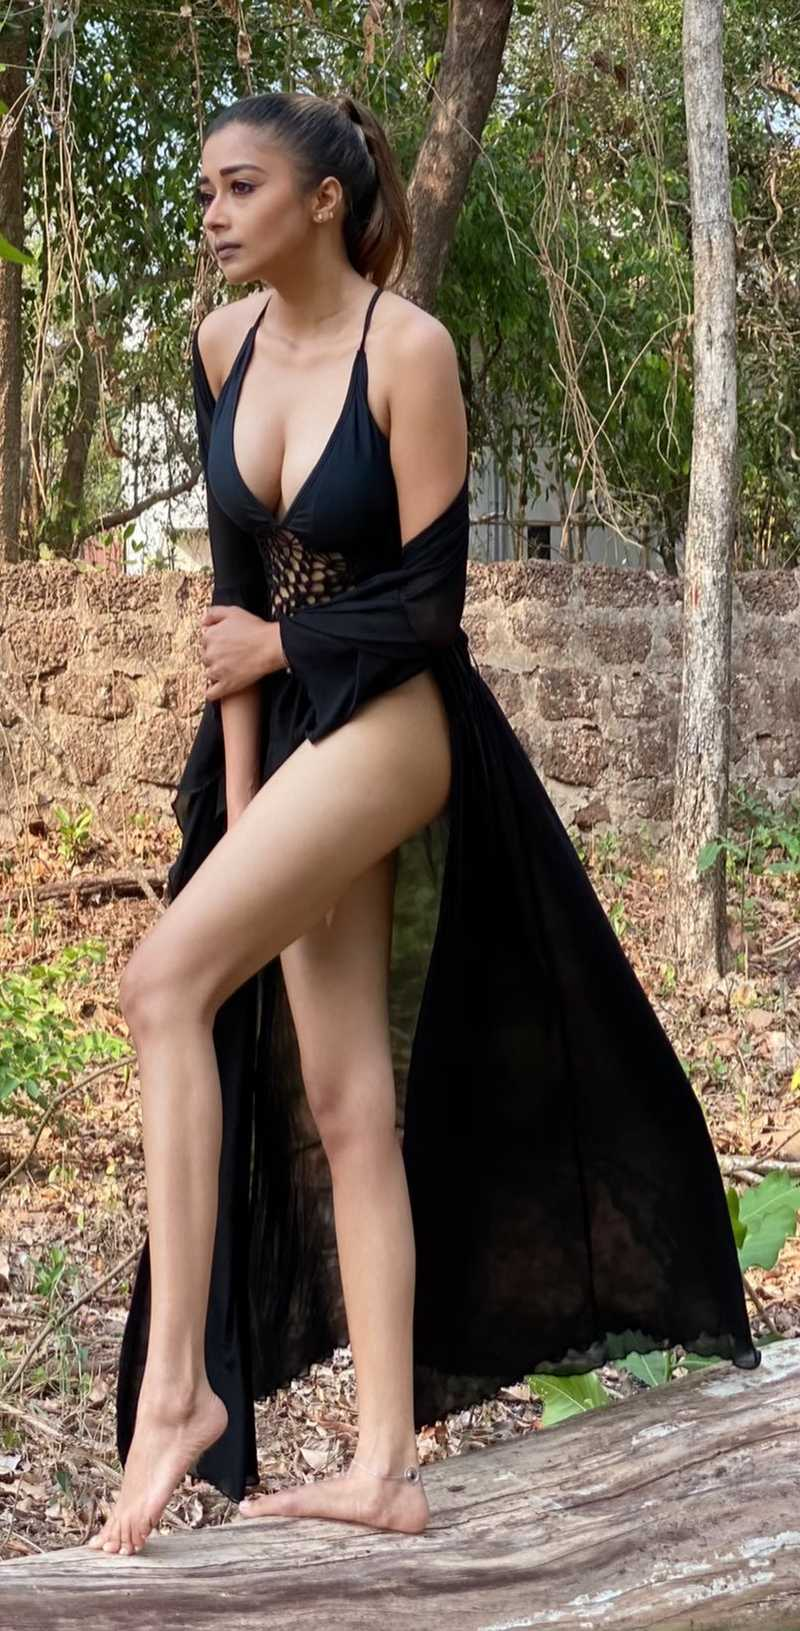 tina-datta-display-her-hot-ass-legs-in-black-bikini